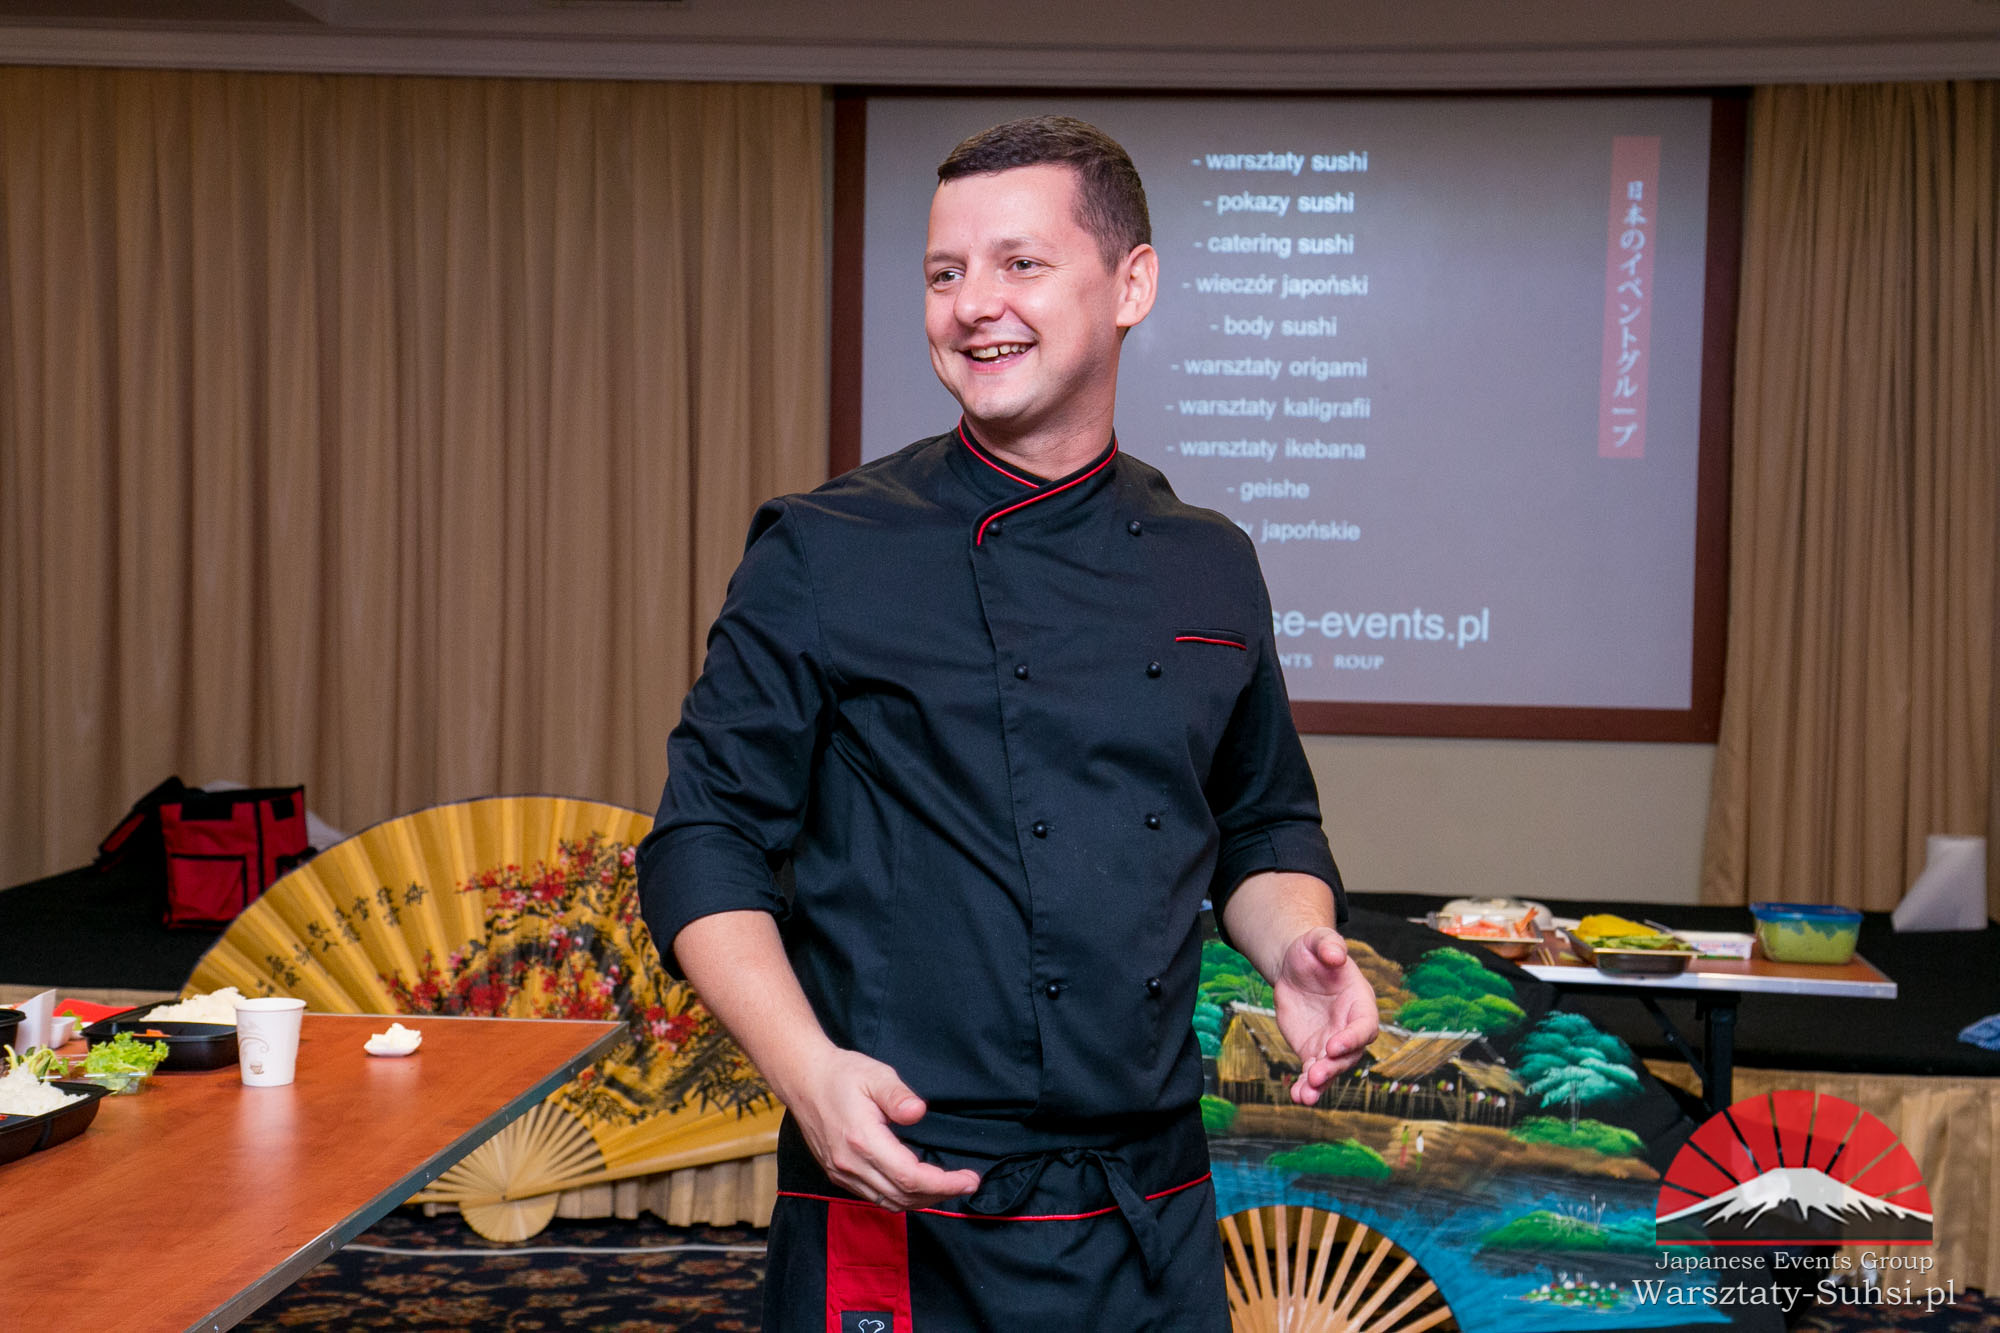 japanese-events-group-warsztaty-sushi- RUMIA HOTEL FALTOM